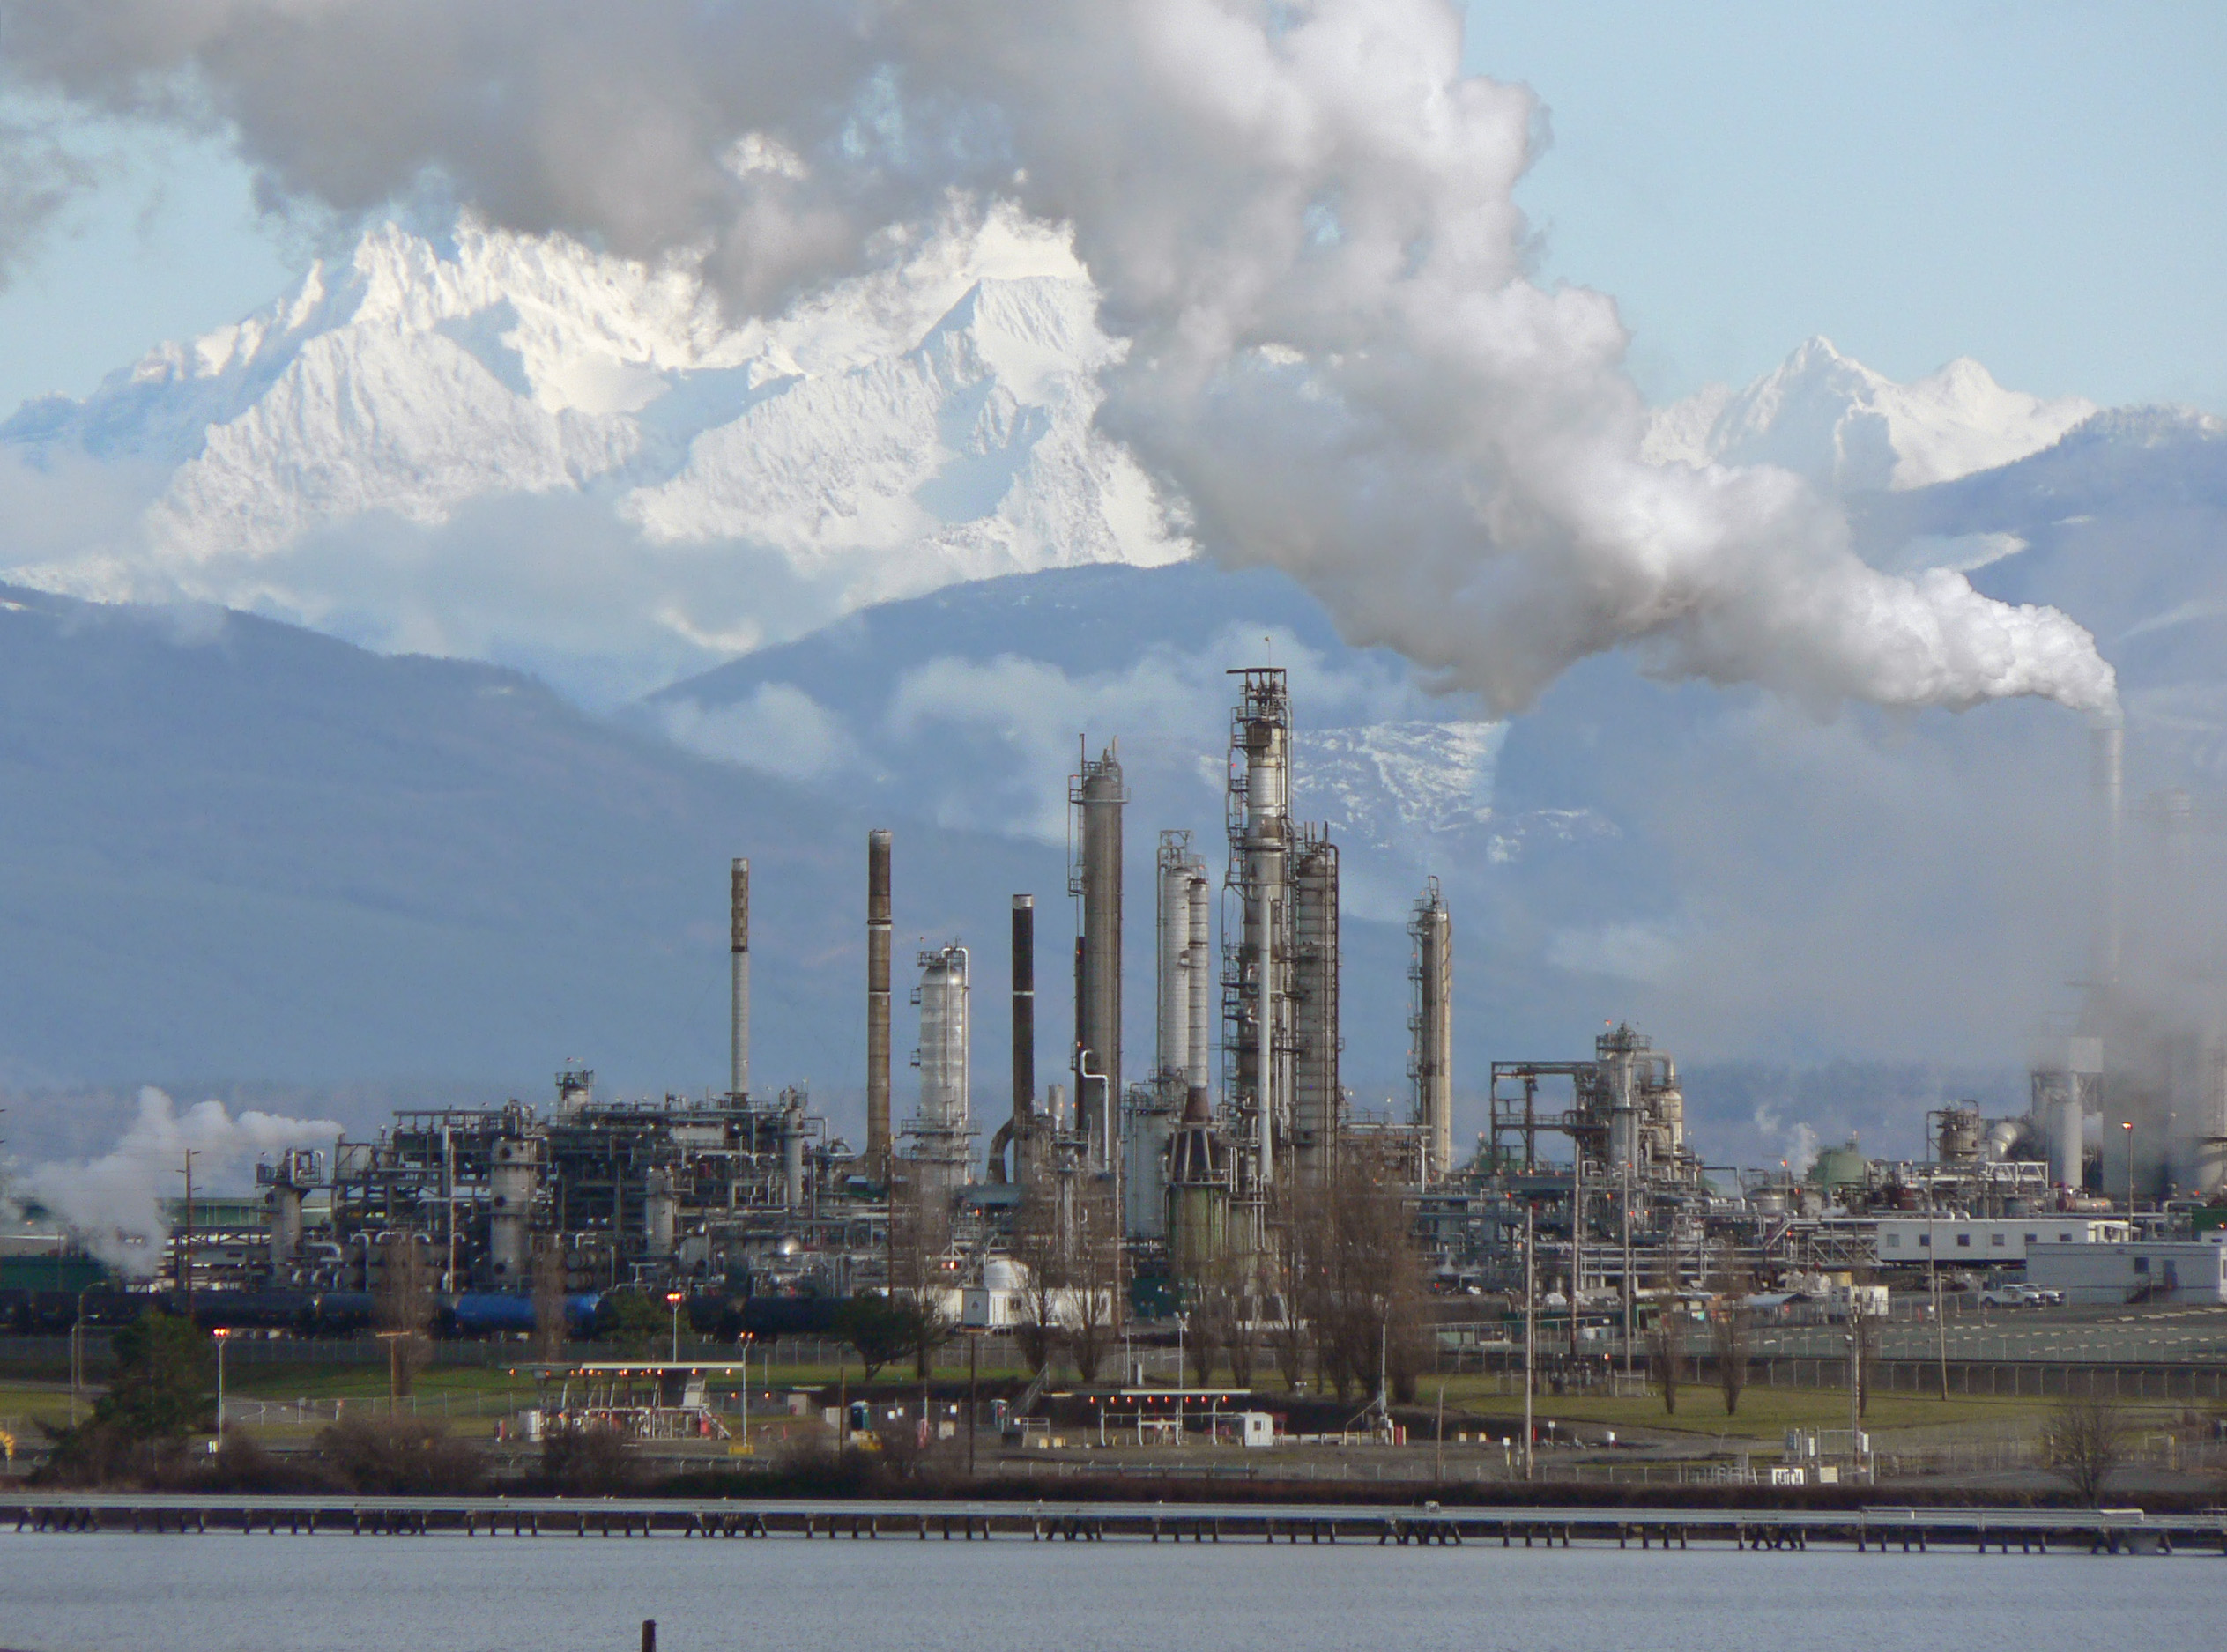 Oil refinery - Wikipedia